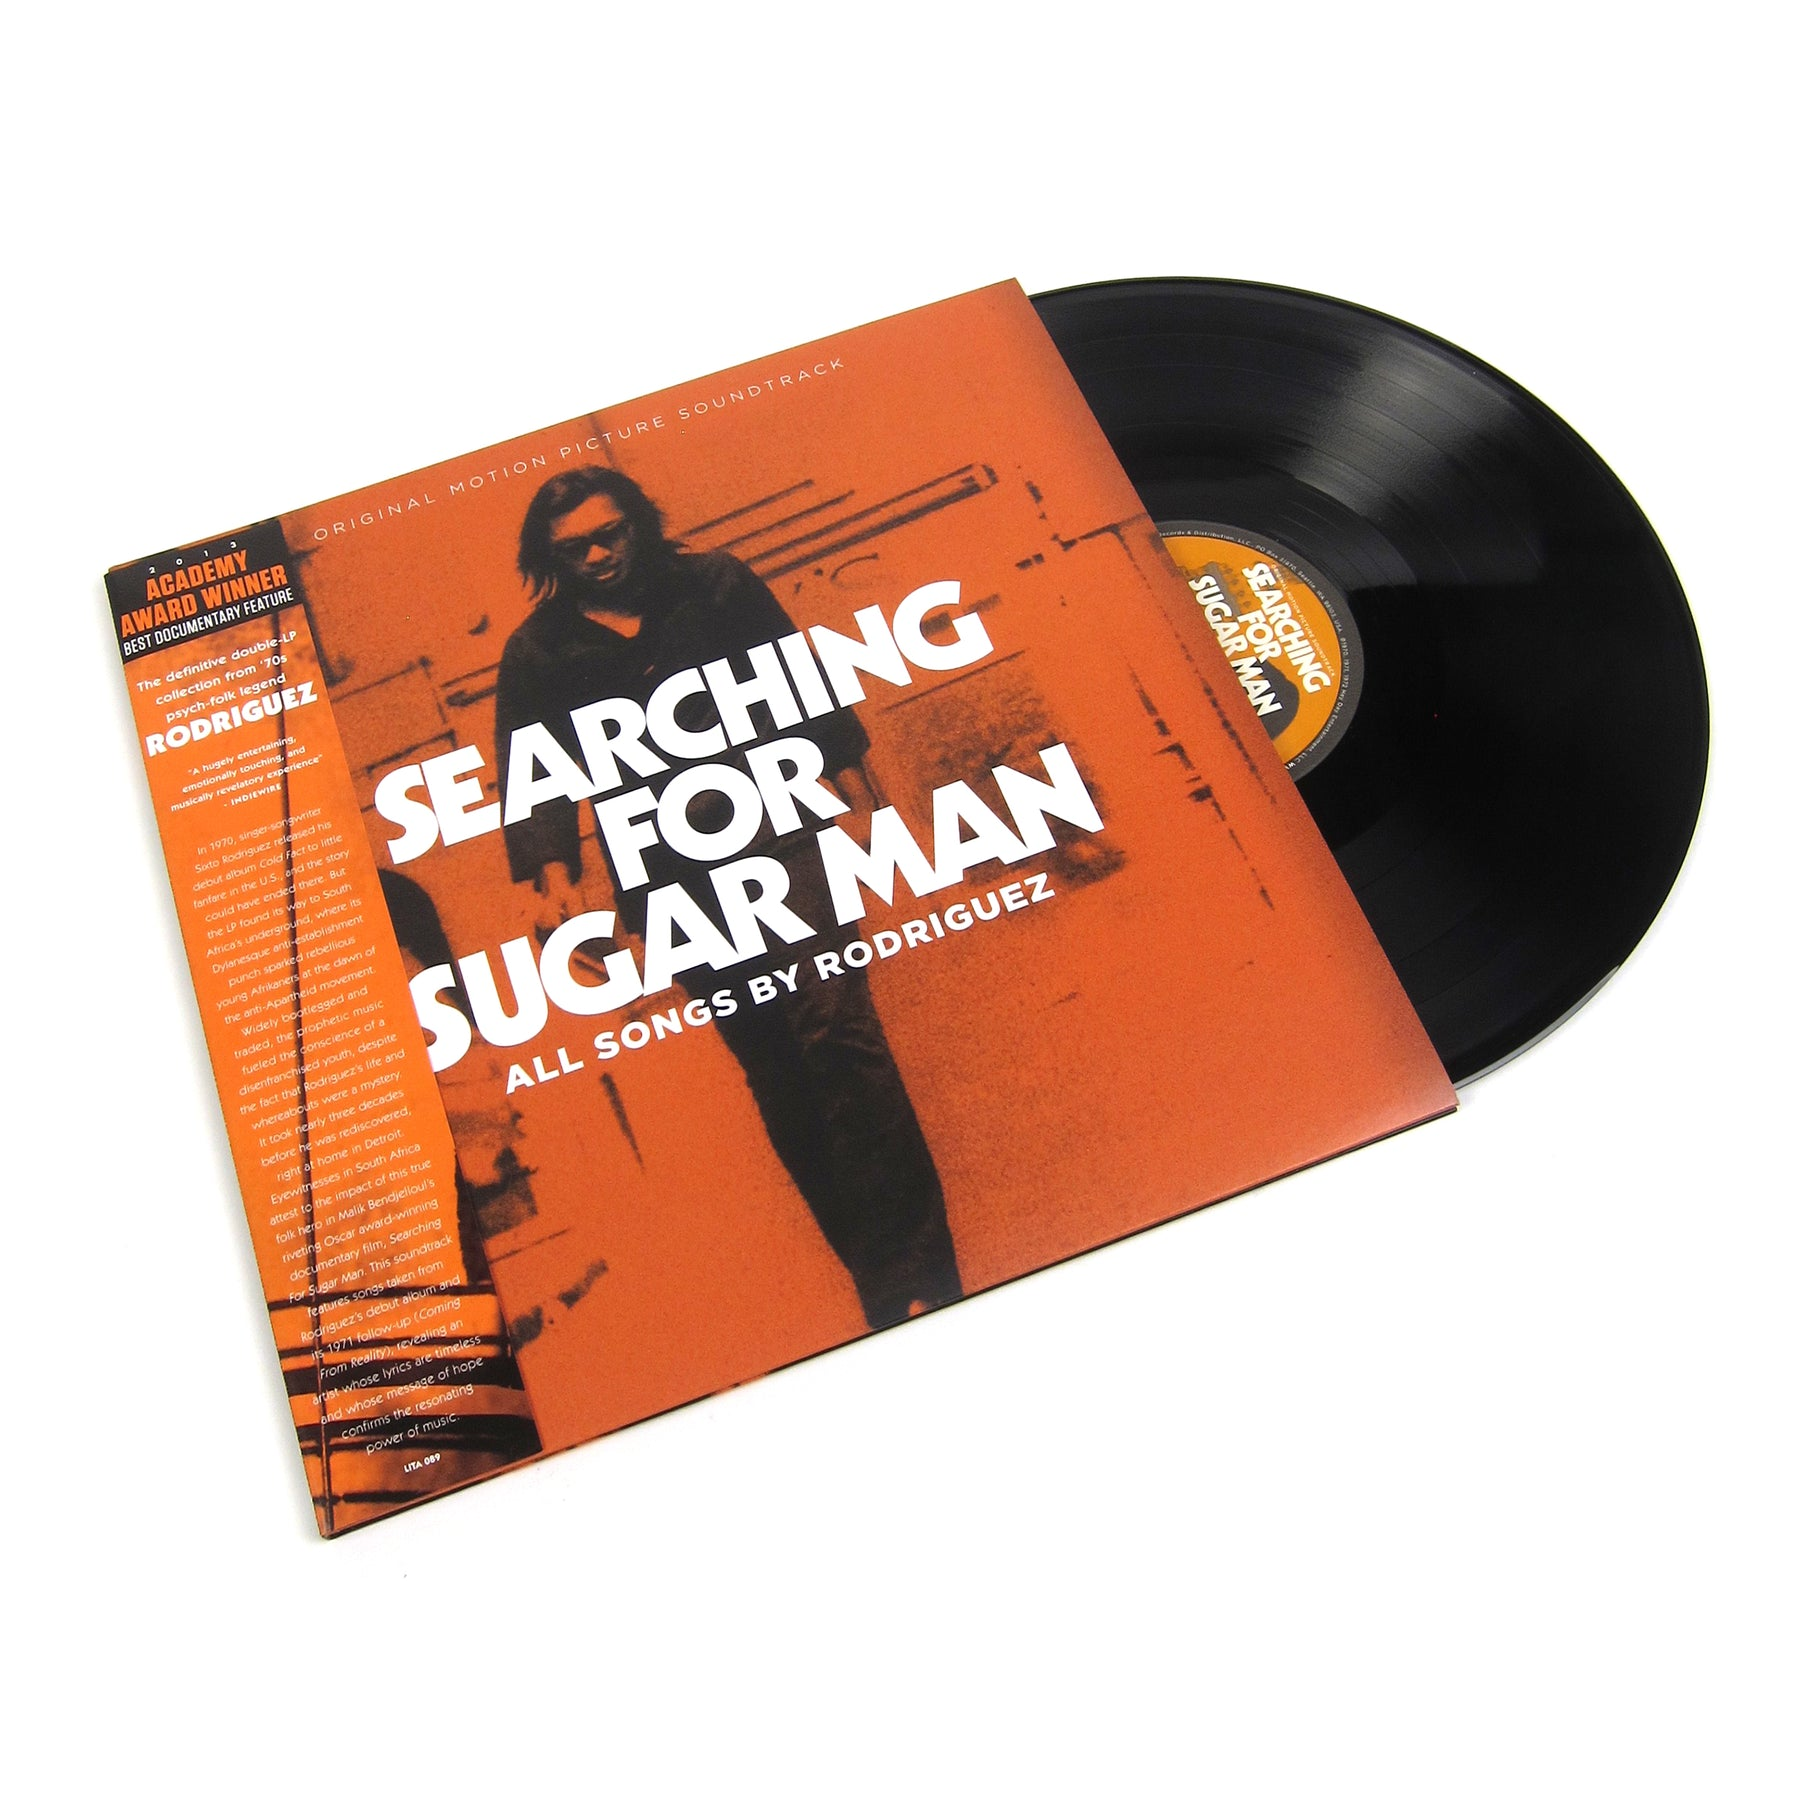 Searching for sugar man blu-ray cover dvd covers & labels by.